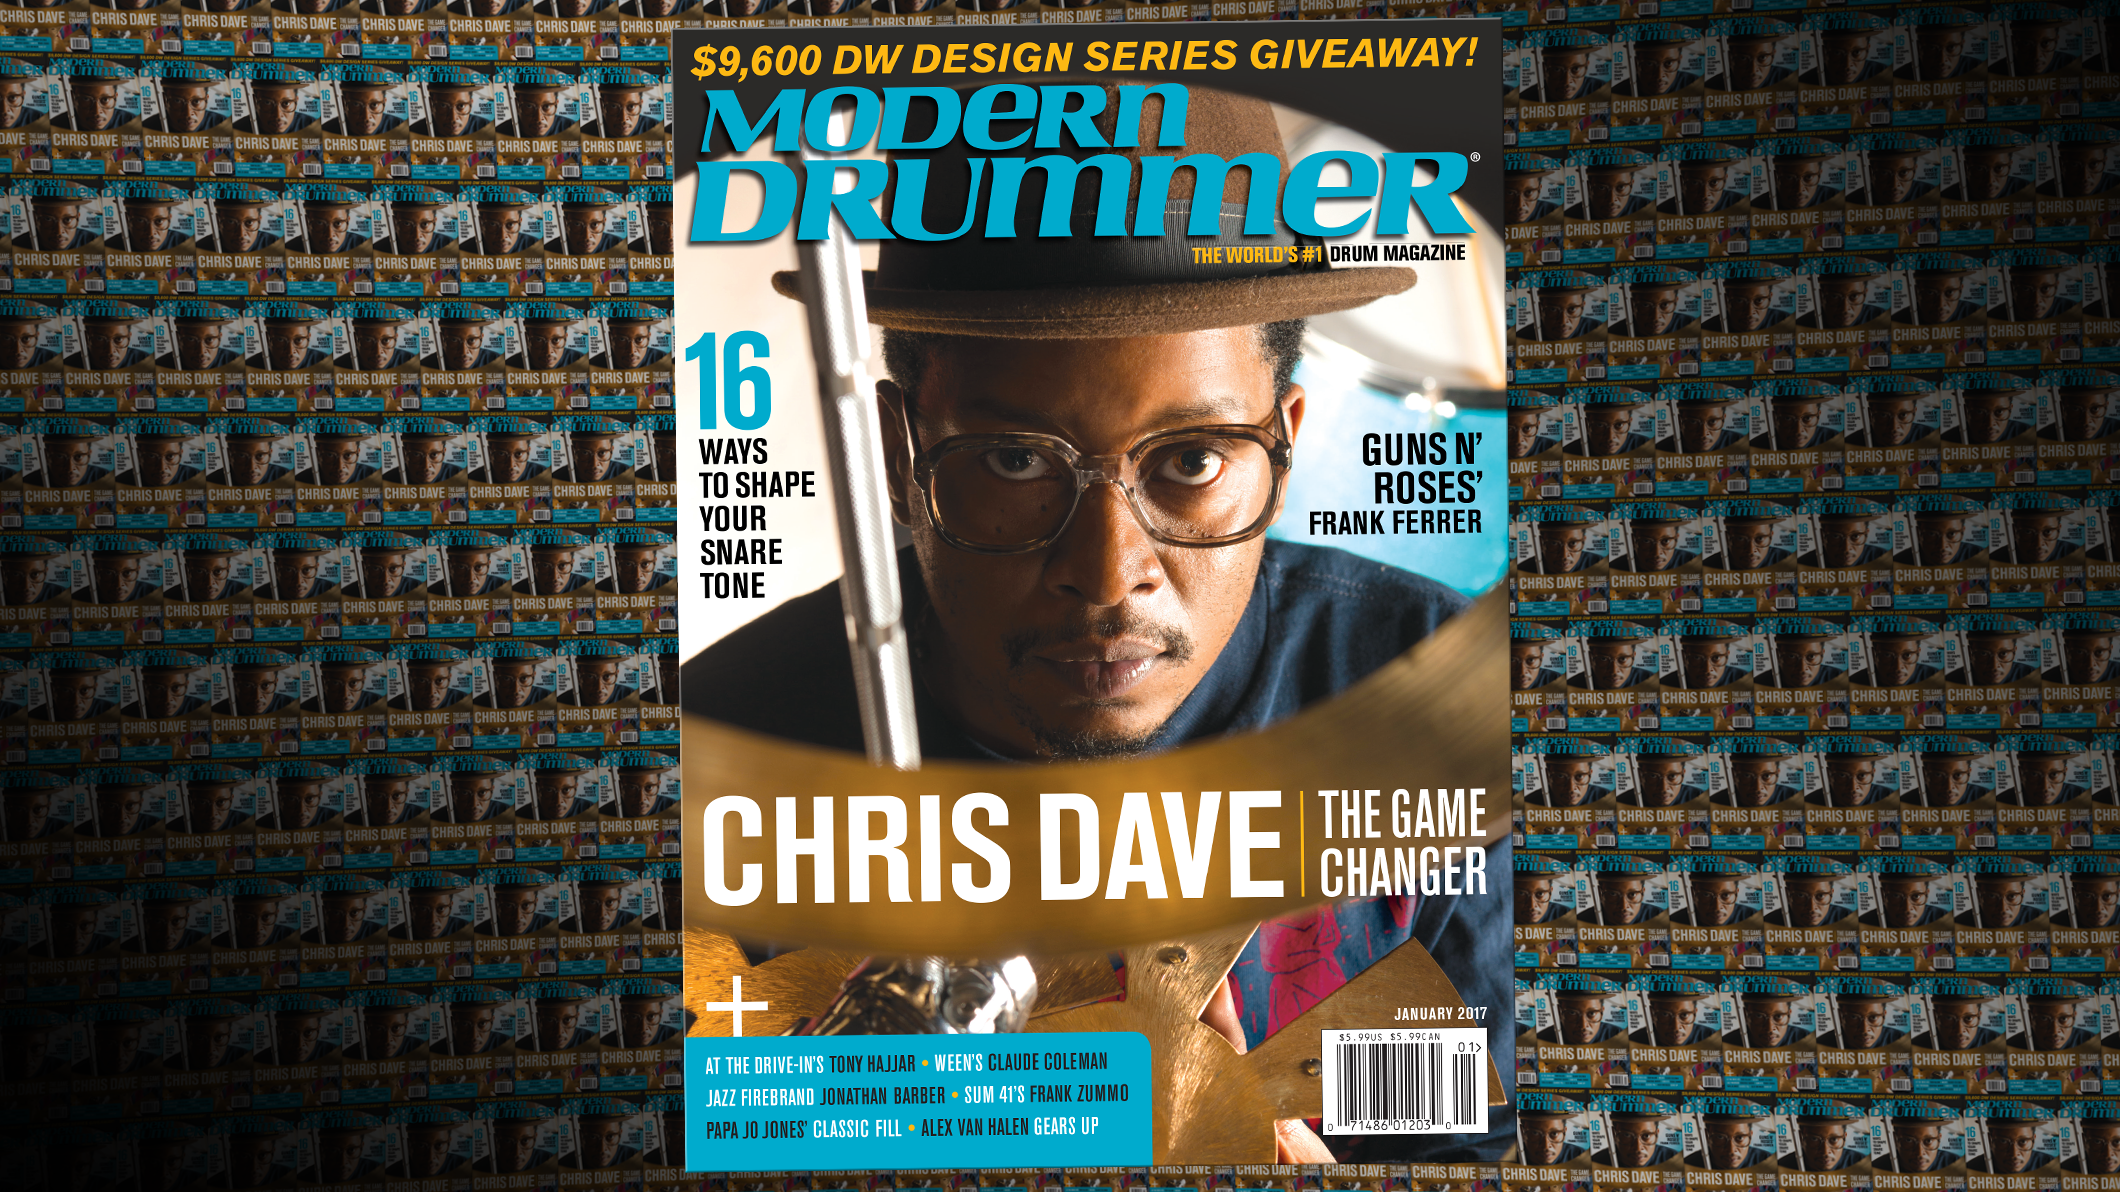 January 2017 Issue of Modern Drummer magazine featuring Chris Dave